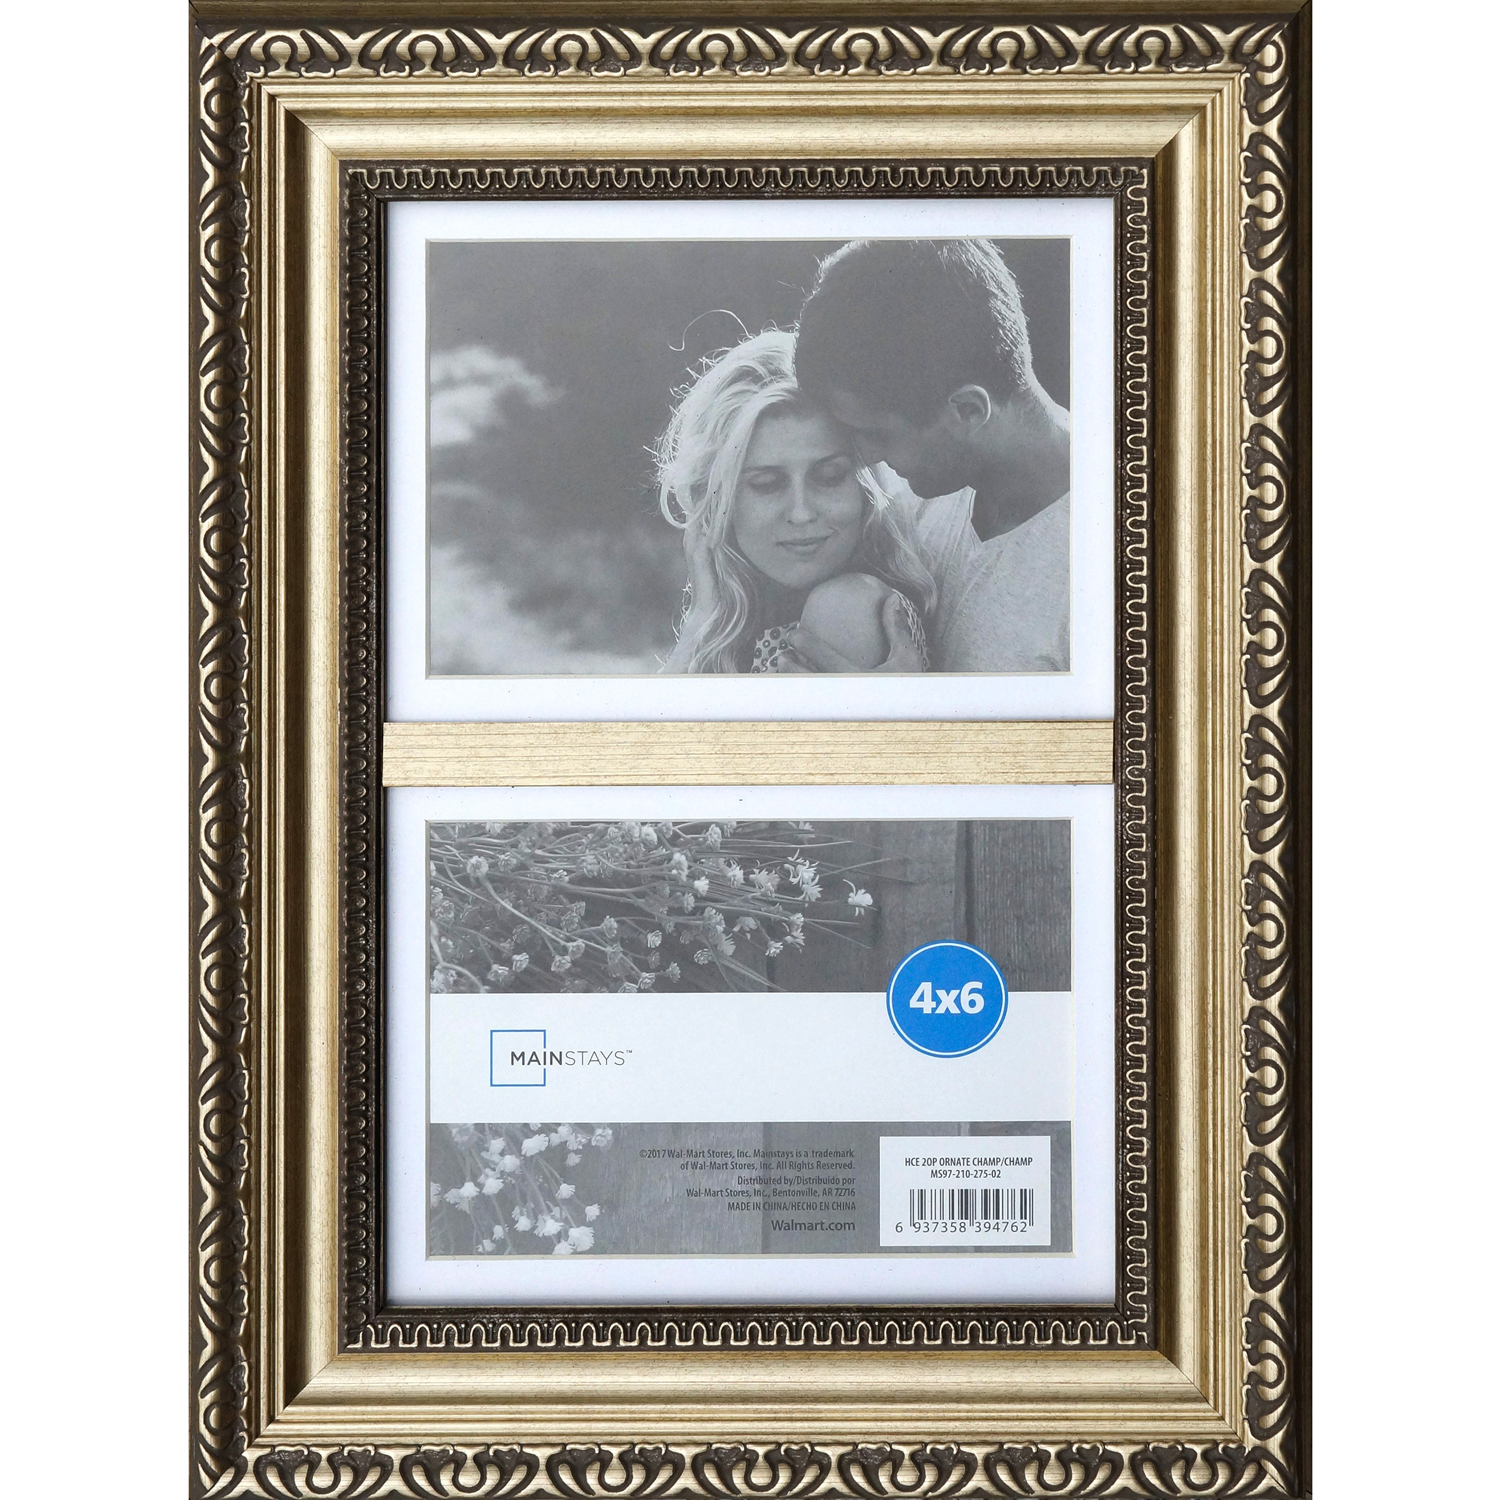 Mainstays 4x6 Ornate Champ Picture Frame, 4pk